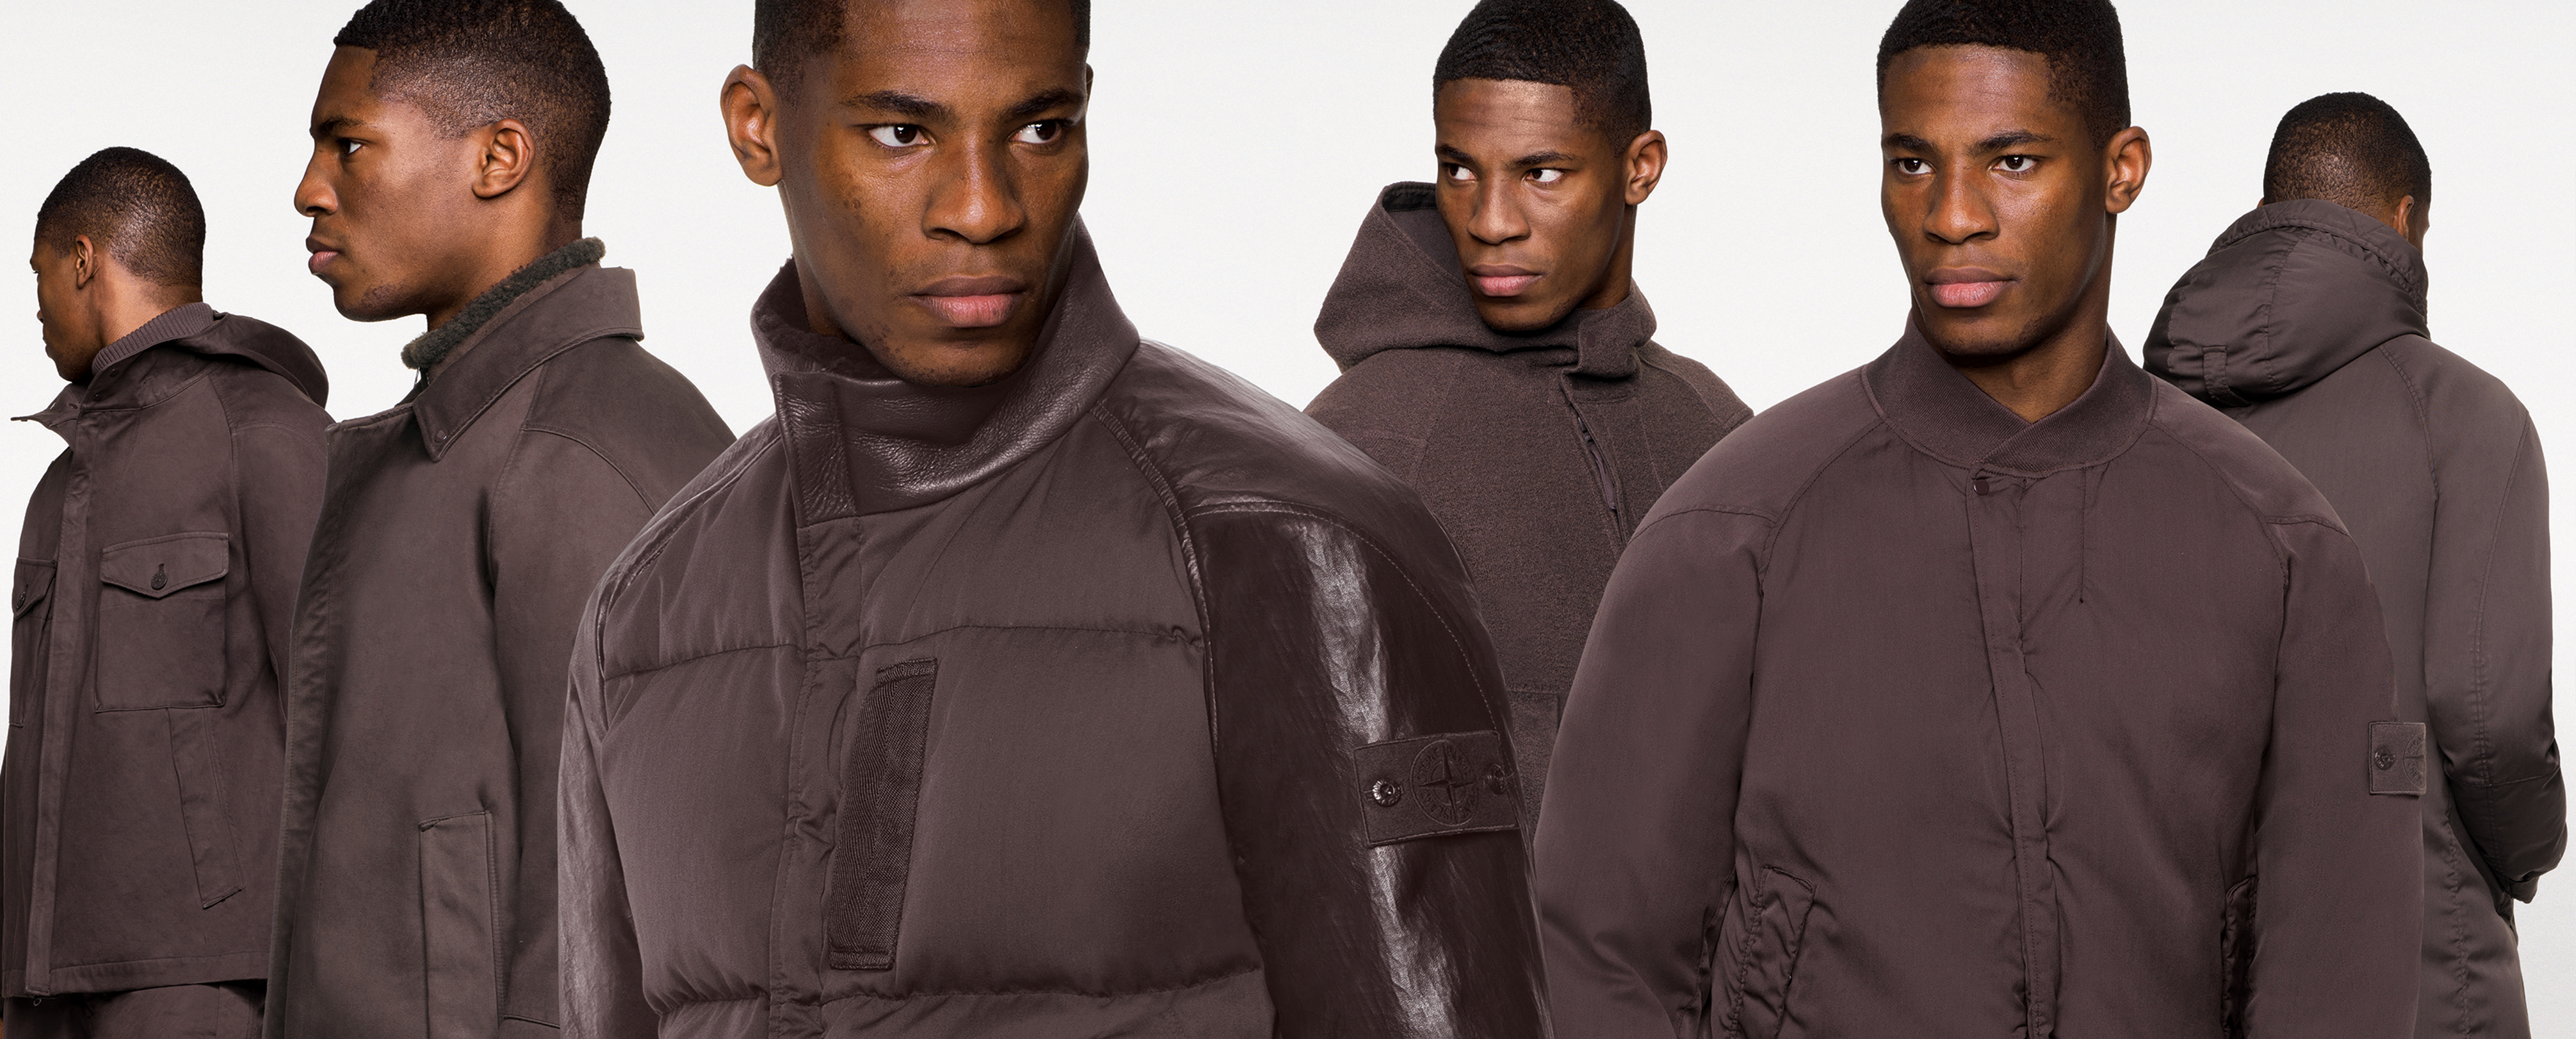 Six models wearing full dark brown outfits with different styles of jackets including bombers and hooded ones jackets.